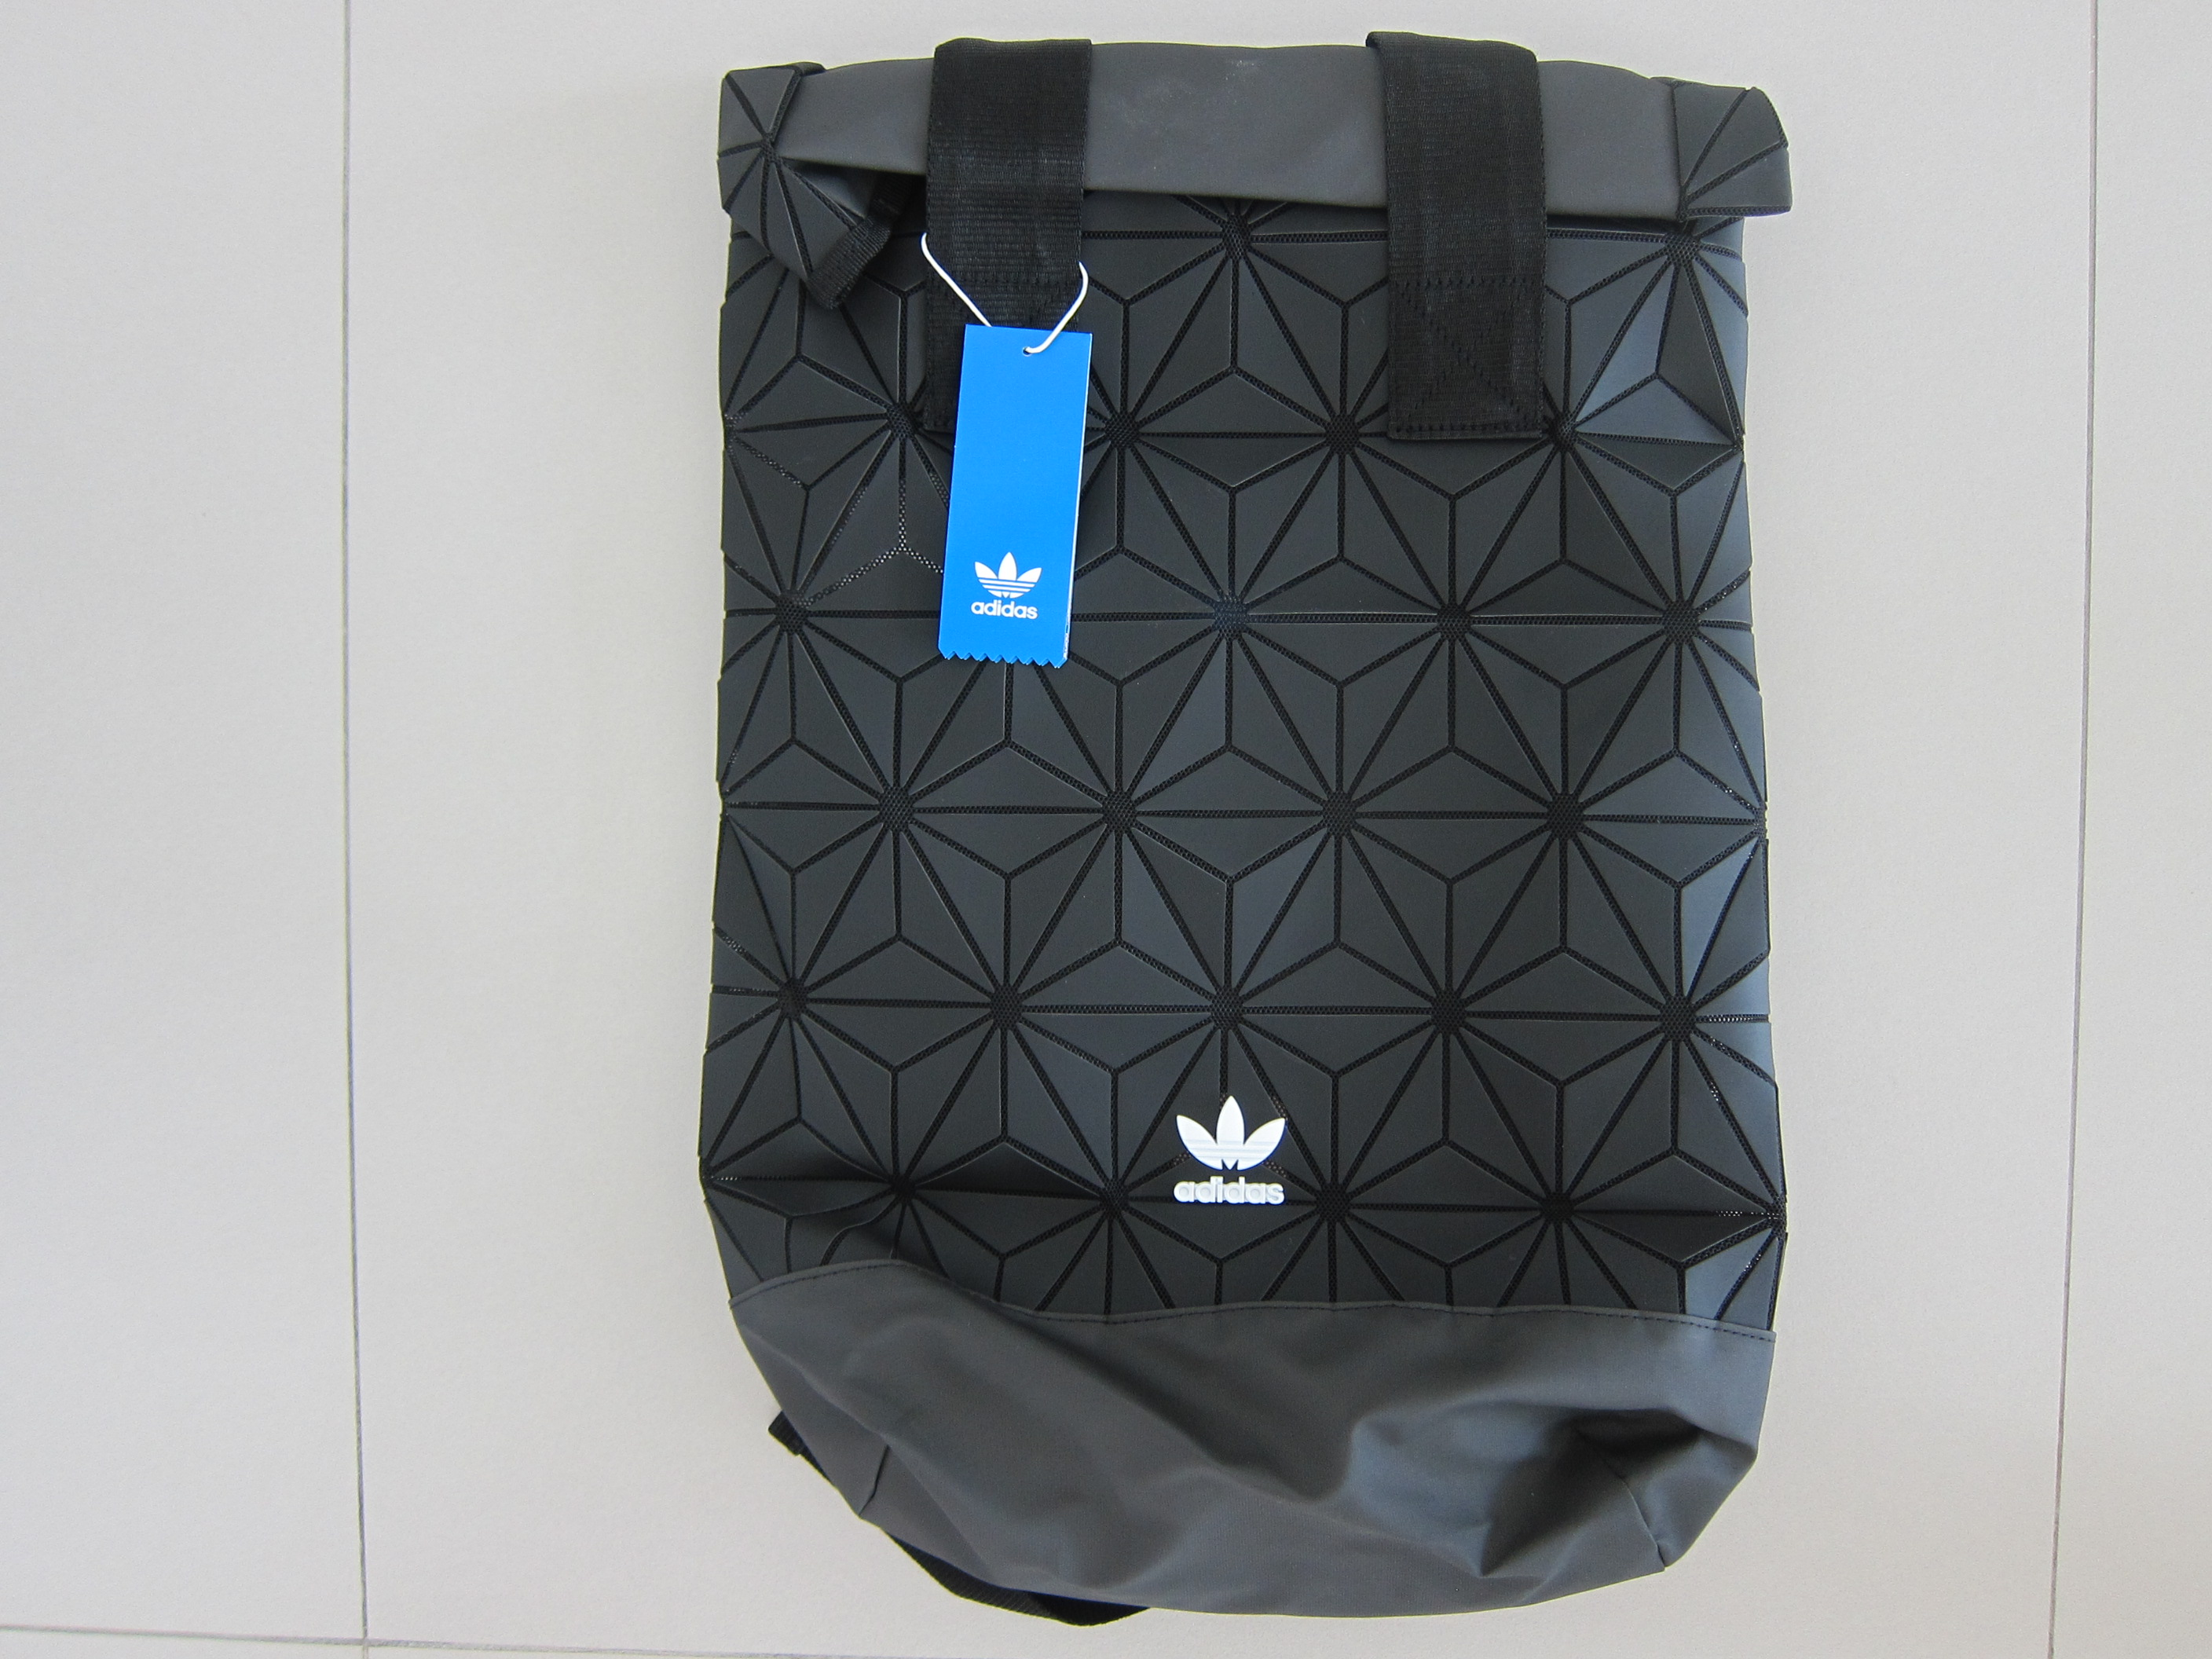 850c36a3d0eb Adidas Issey Miyake 3D Roll Top Backpack « Blog